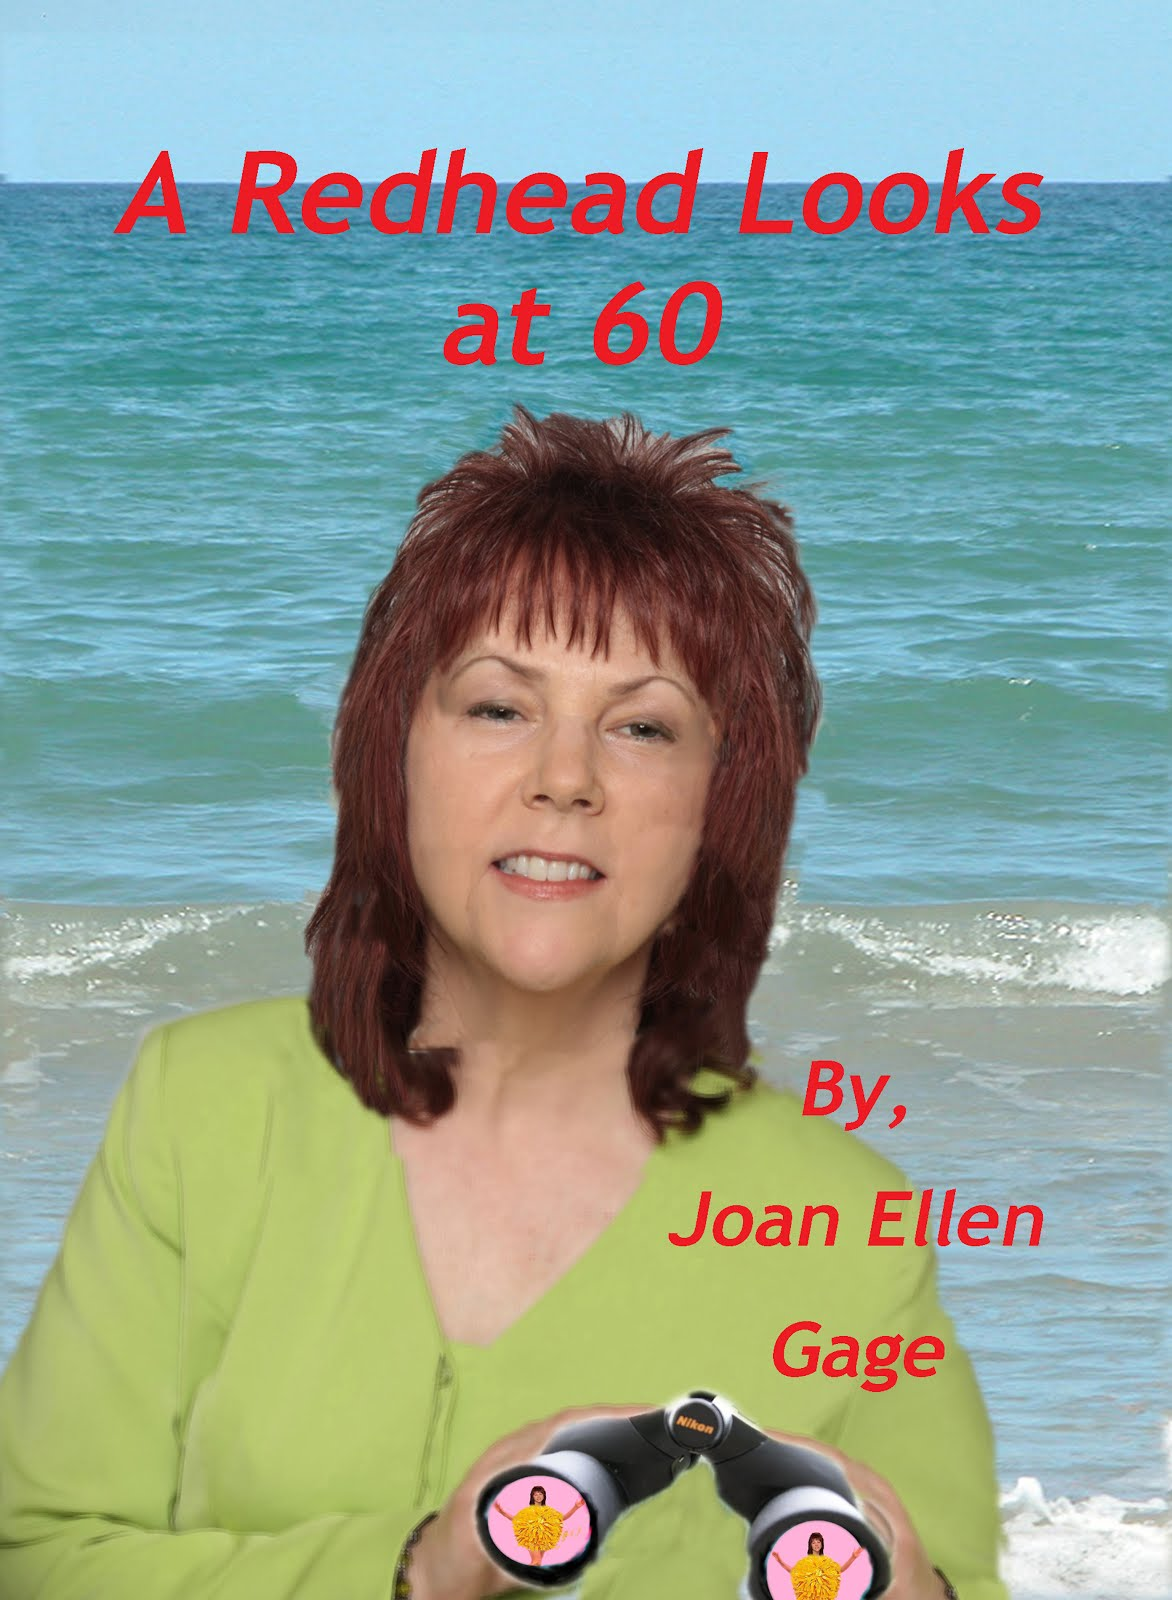 A Redhead Looks at 60